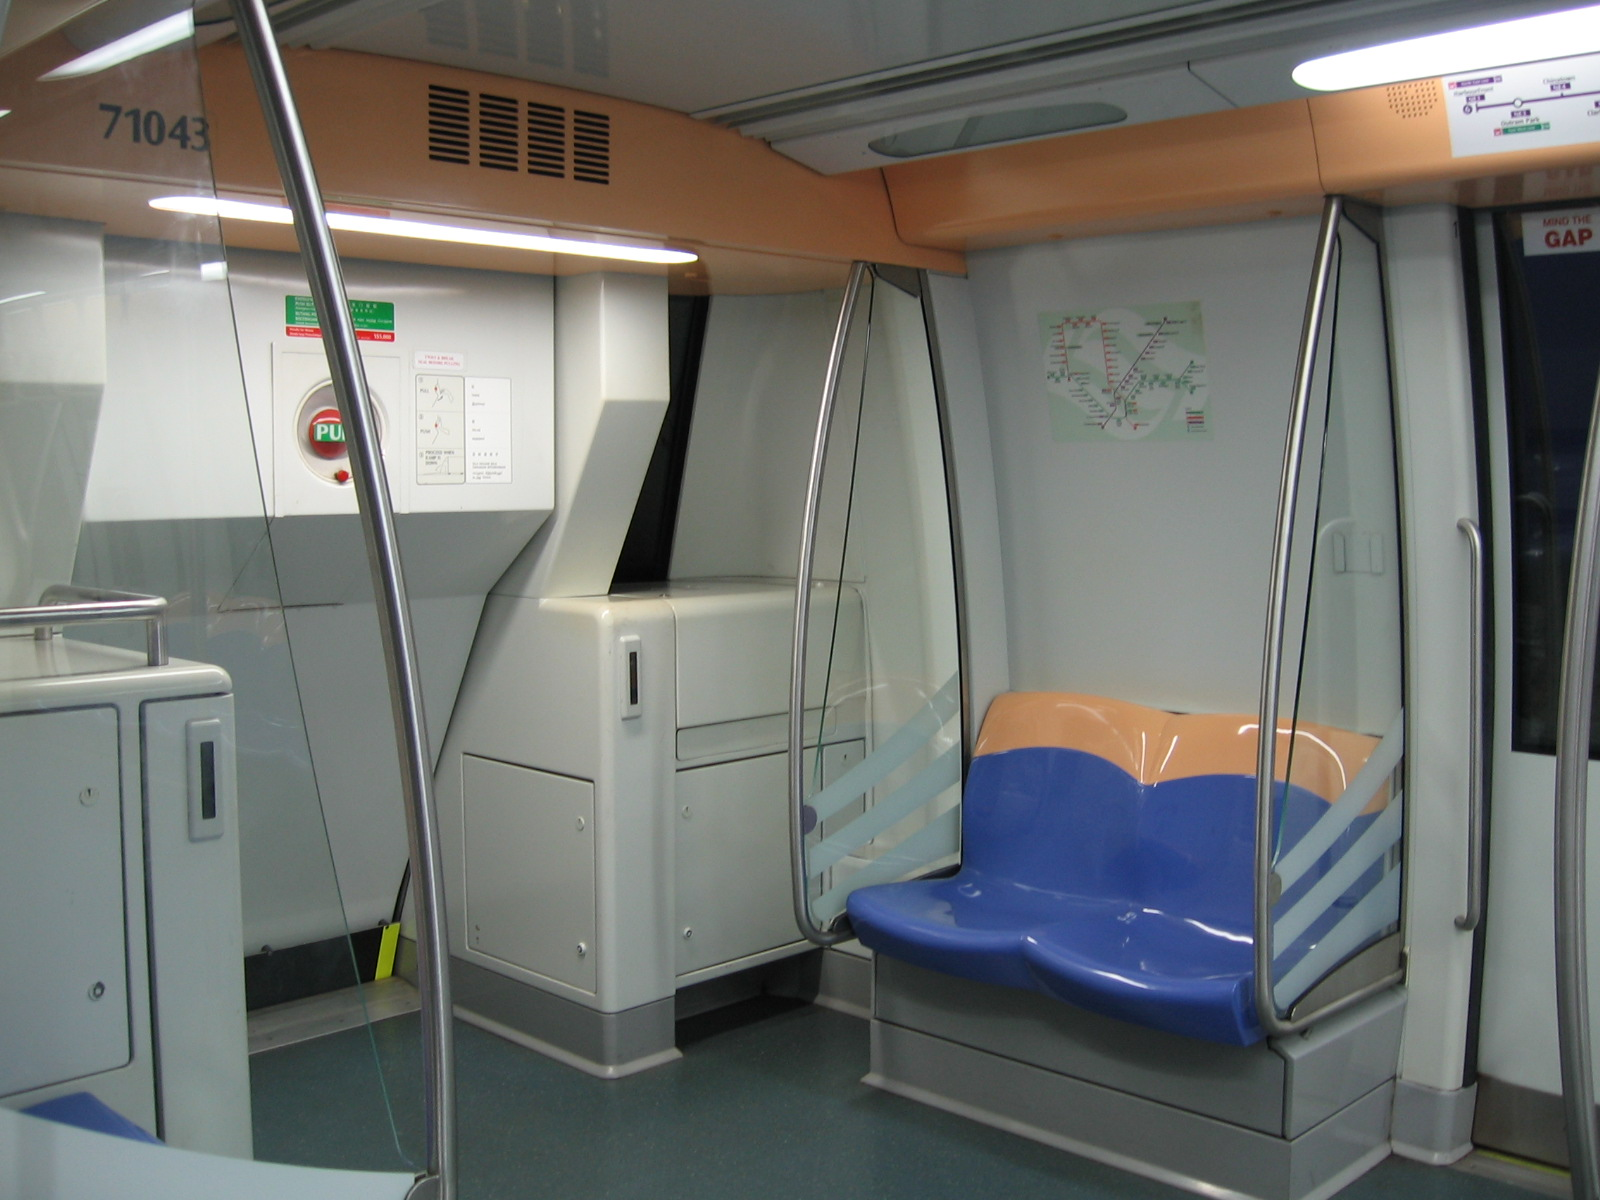 File:NORTH EAST LINE, Singapore, Train 2, Aug 06.JPG - Wikipedia ...